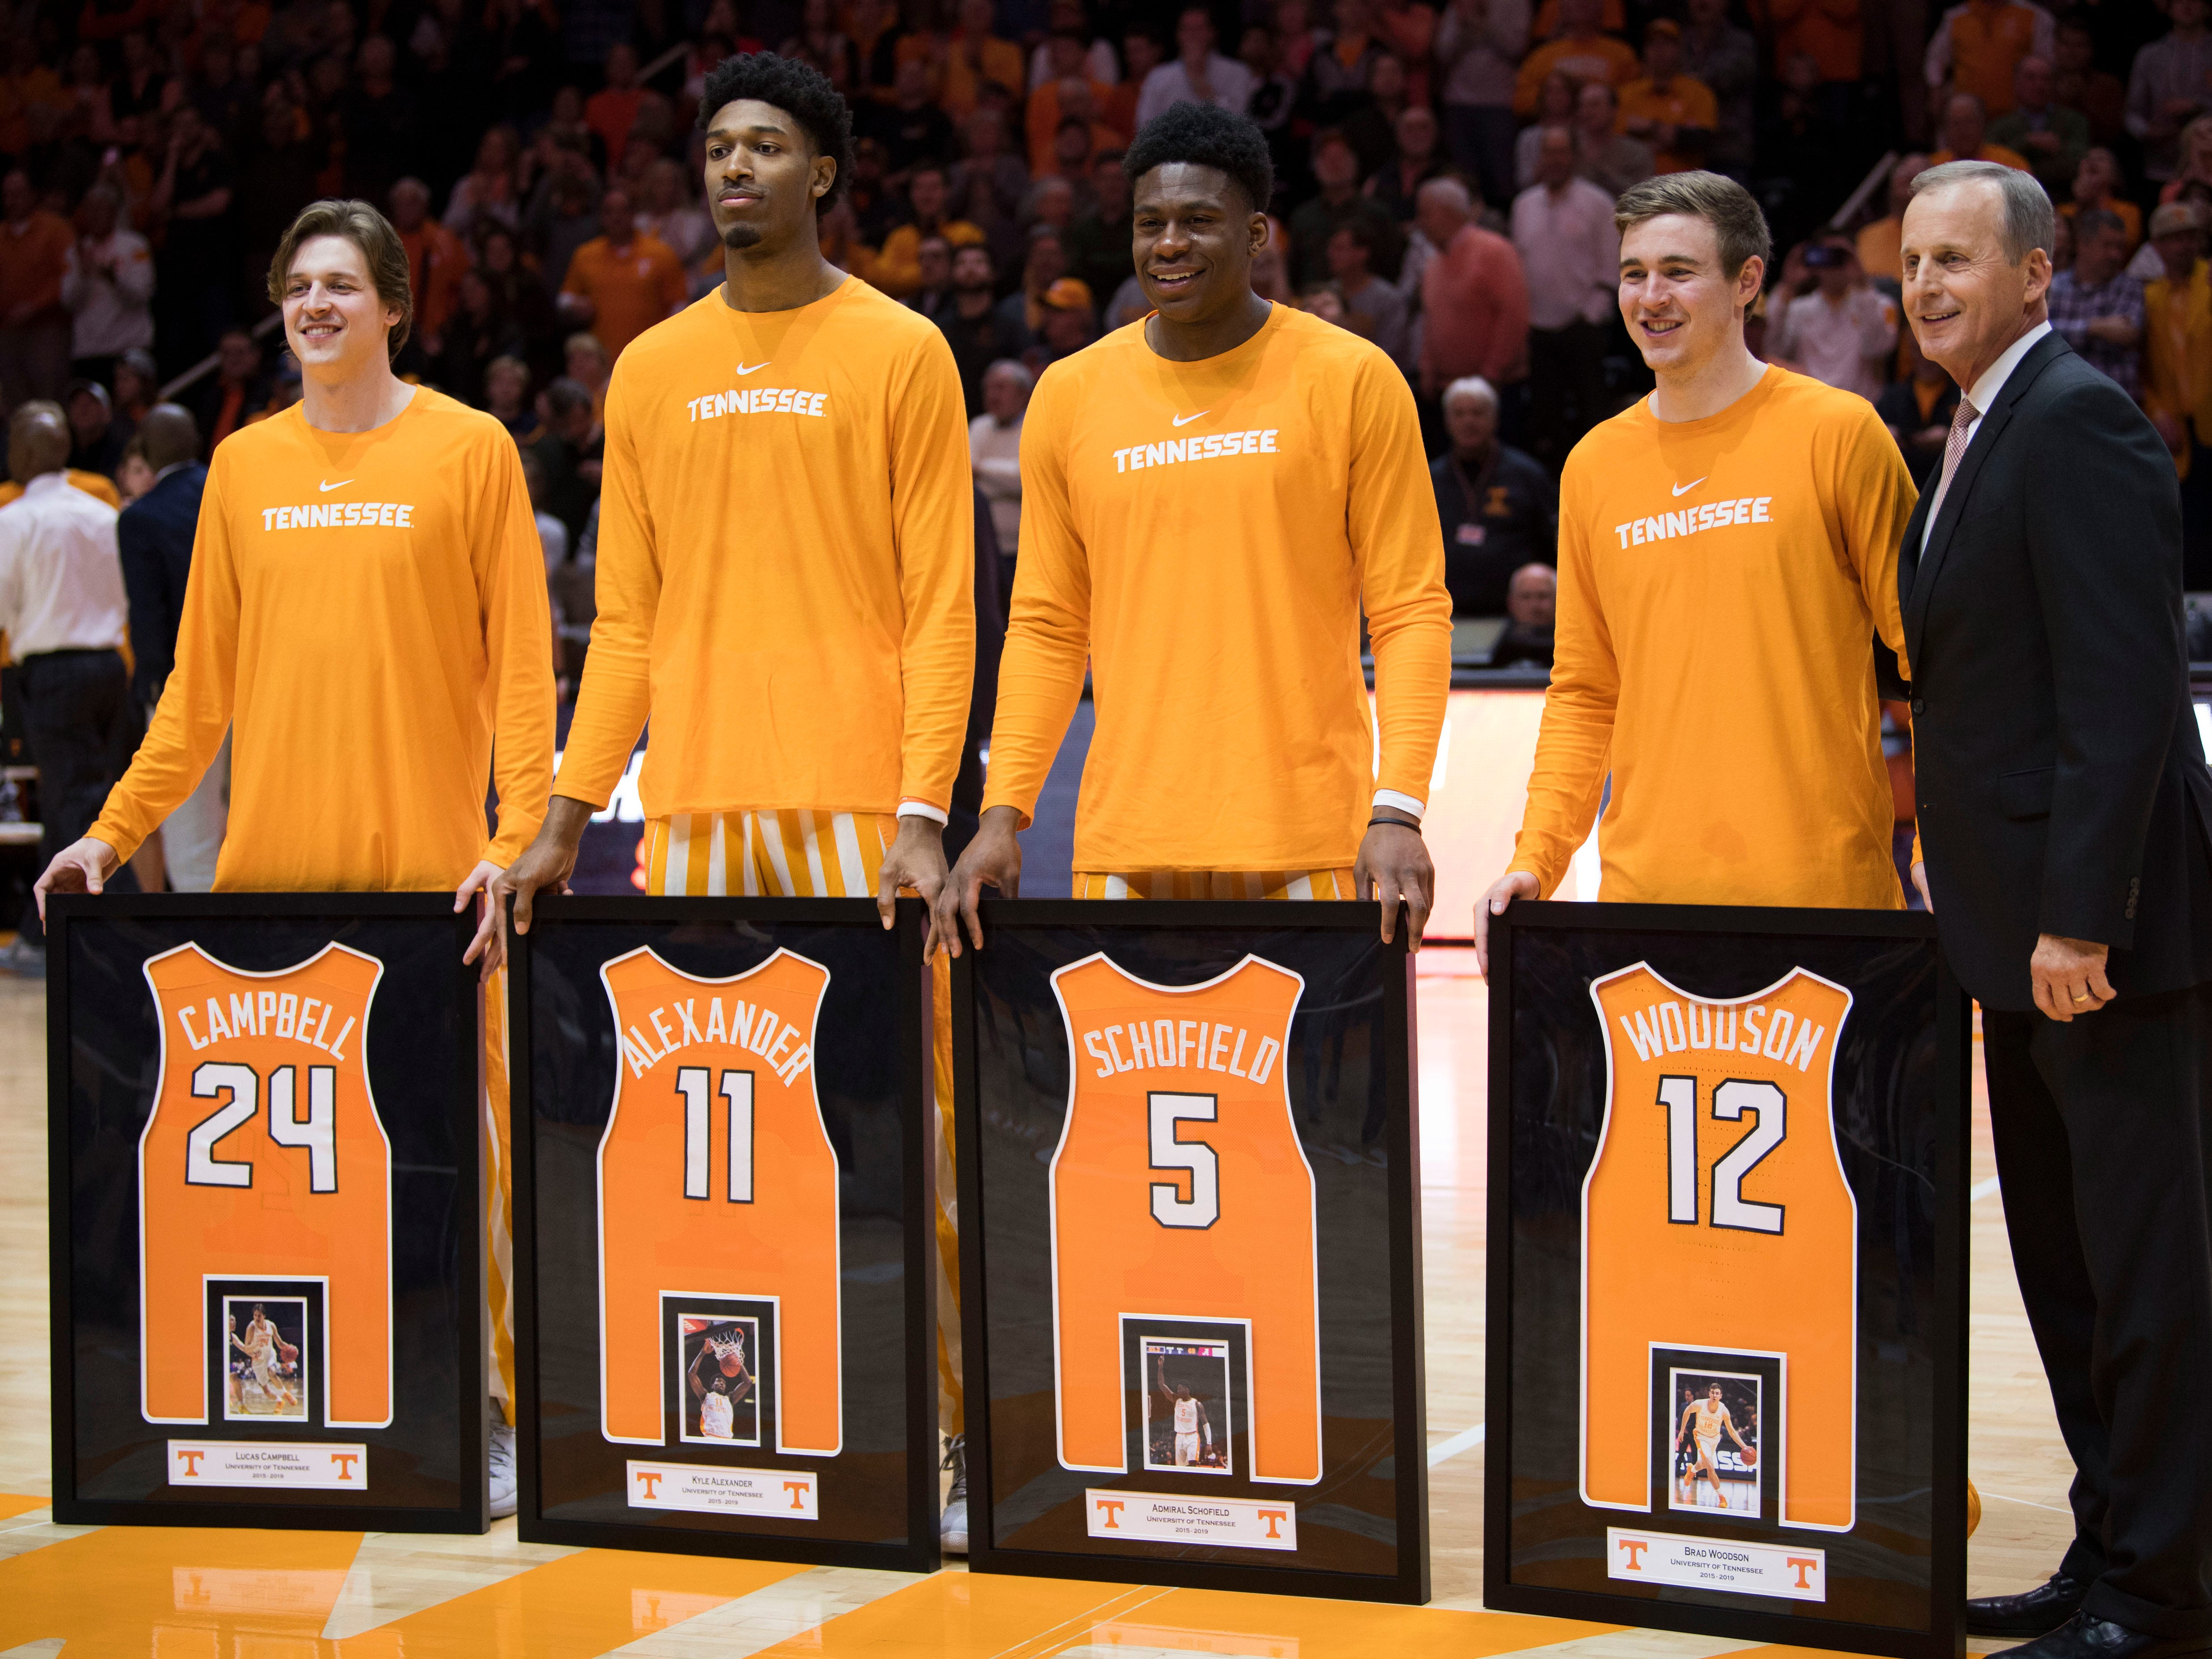 From left, Tennessee guard Lucas Campbell (24), Tennessee forward Kyle Alexander (11), Tennessee guard Admiral Schofield (5) and Tennessee guard Brad Woodson (12) is recognized during Senior Night before Tennessee's home finale against Mississippi State at Thompson-Boling Arena in Knoxville on Tuesday, March 5, 2019.